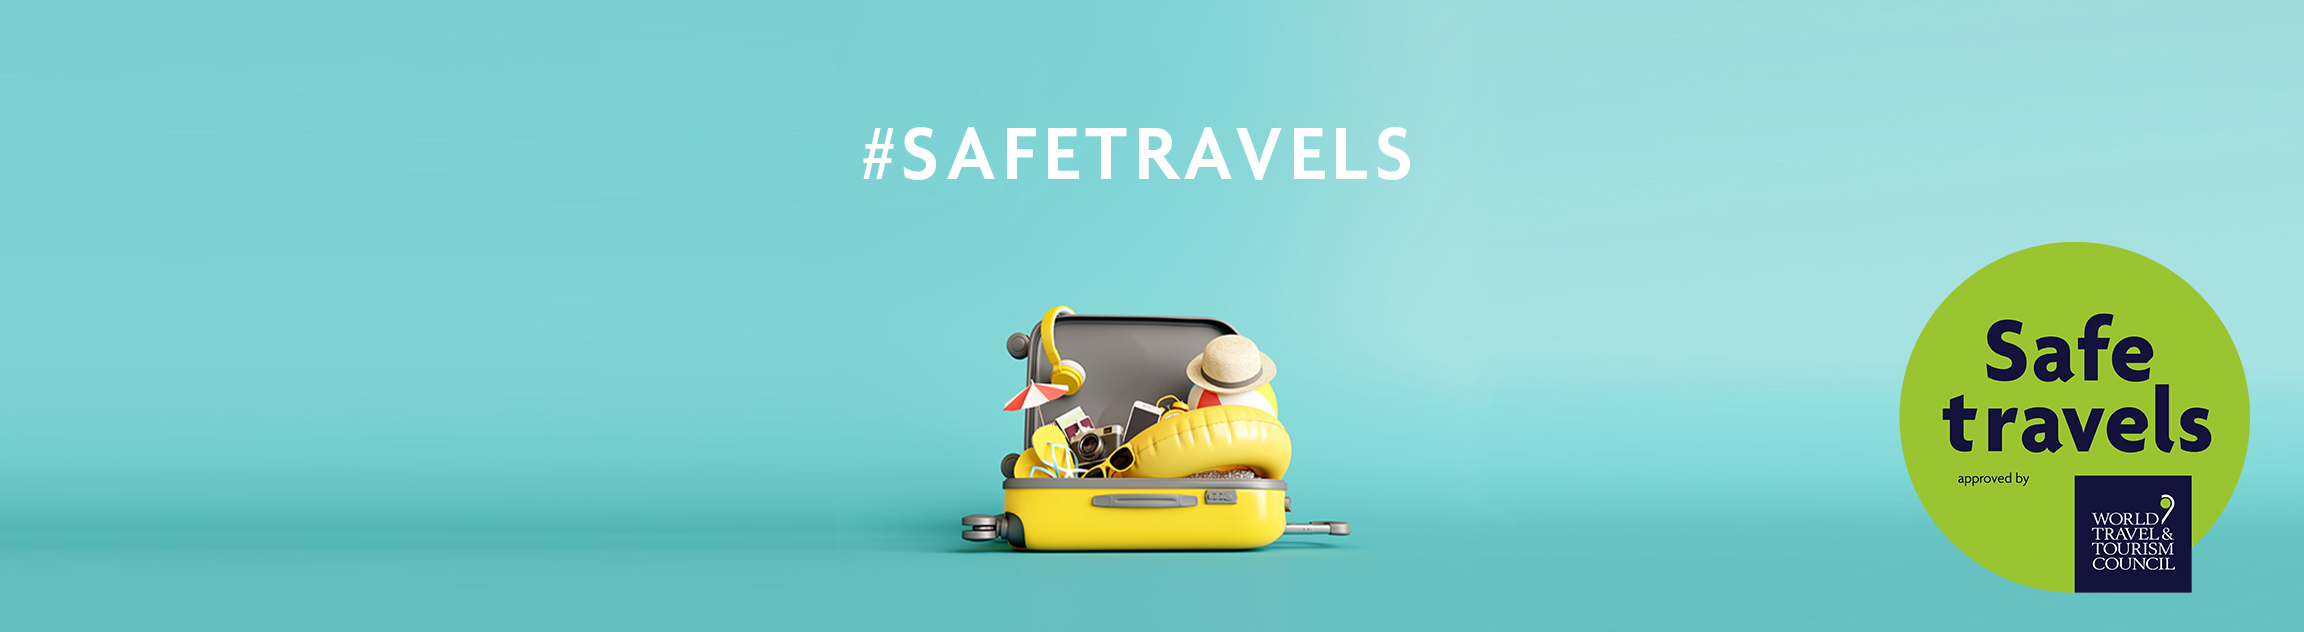 SafeTravels with stamp